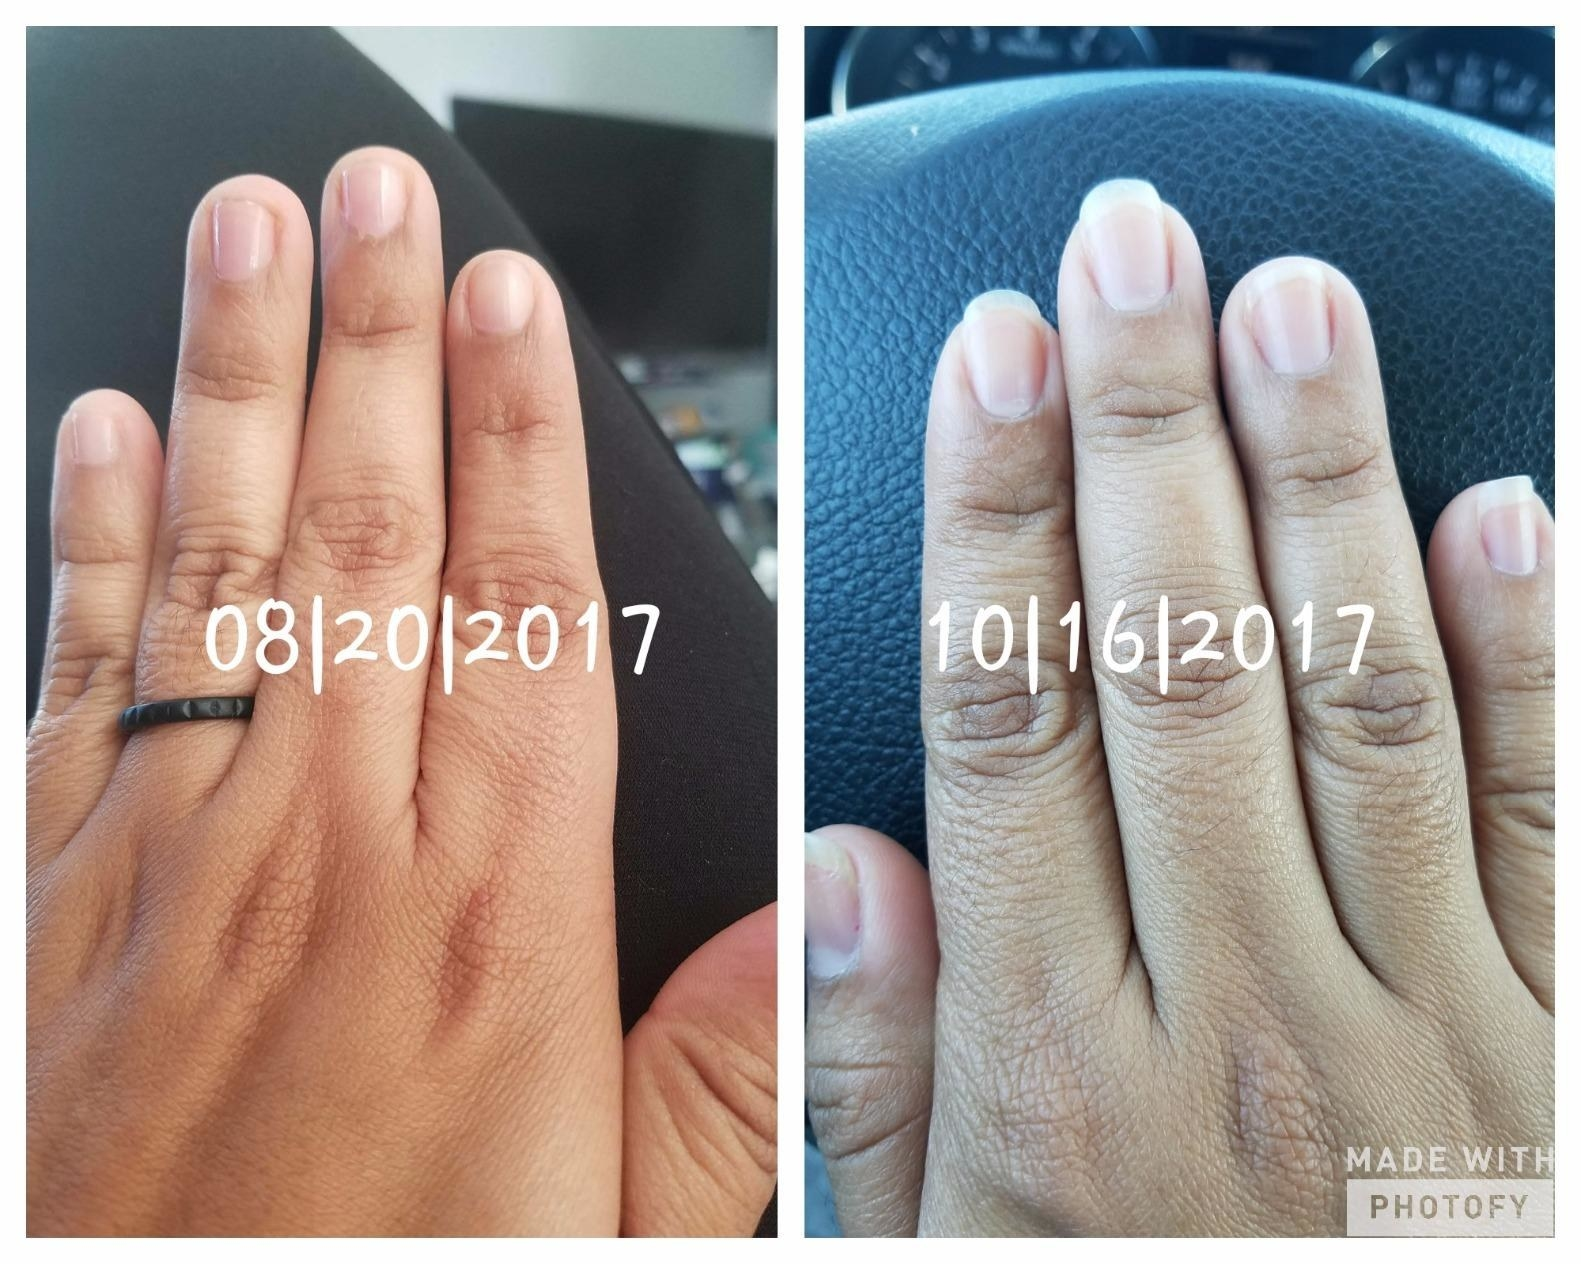 Left:A reviewer's hand with bitten-down short nails on 8/20/2017; right: the same hand with slightly grown-out nails on 10/16/2017